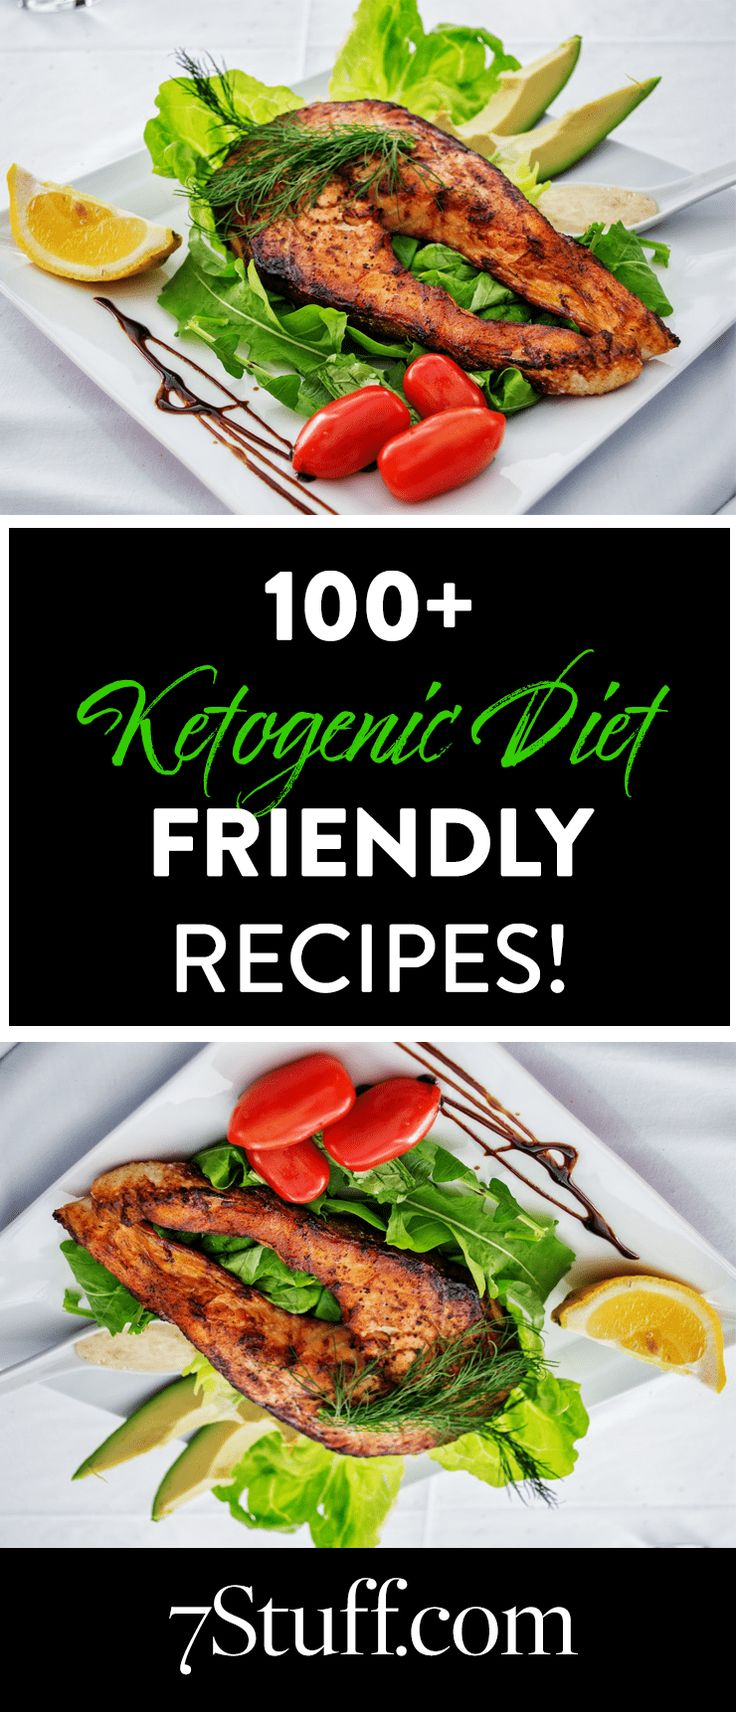 The Keto Beginning is brimming with the strategies and vibrant high-fat, low-carbohydrate, moderate protein recipes that I used to effortlessly switch into a state of nutritional ketosis